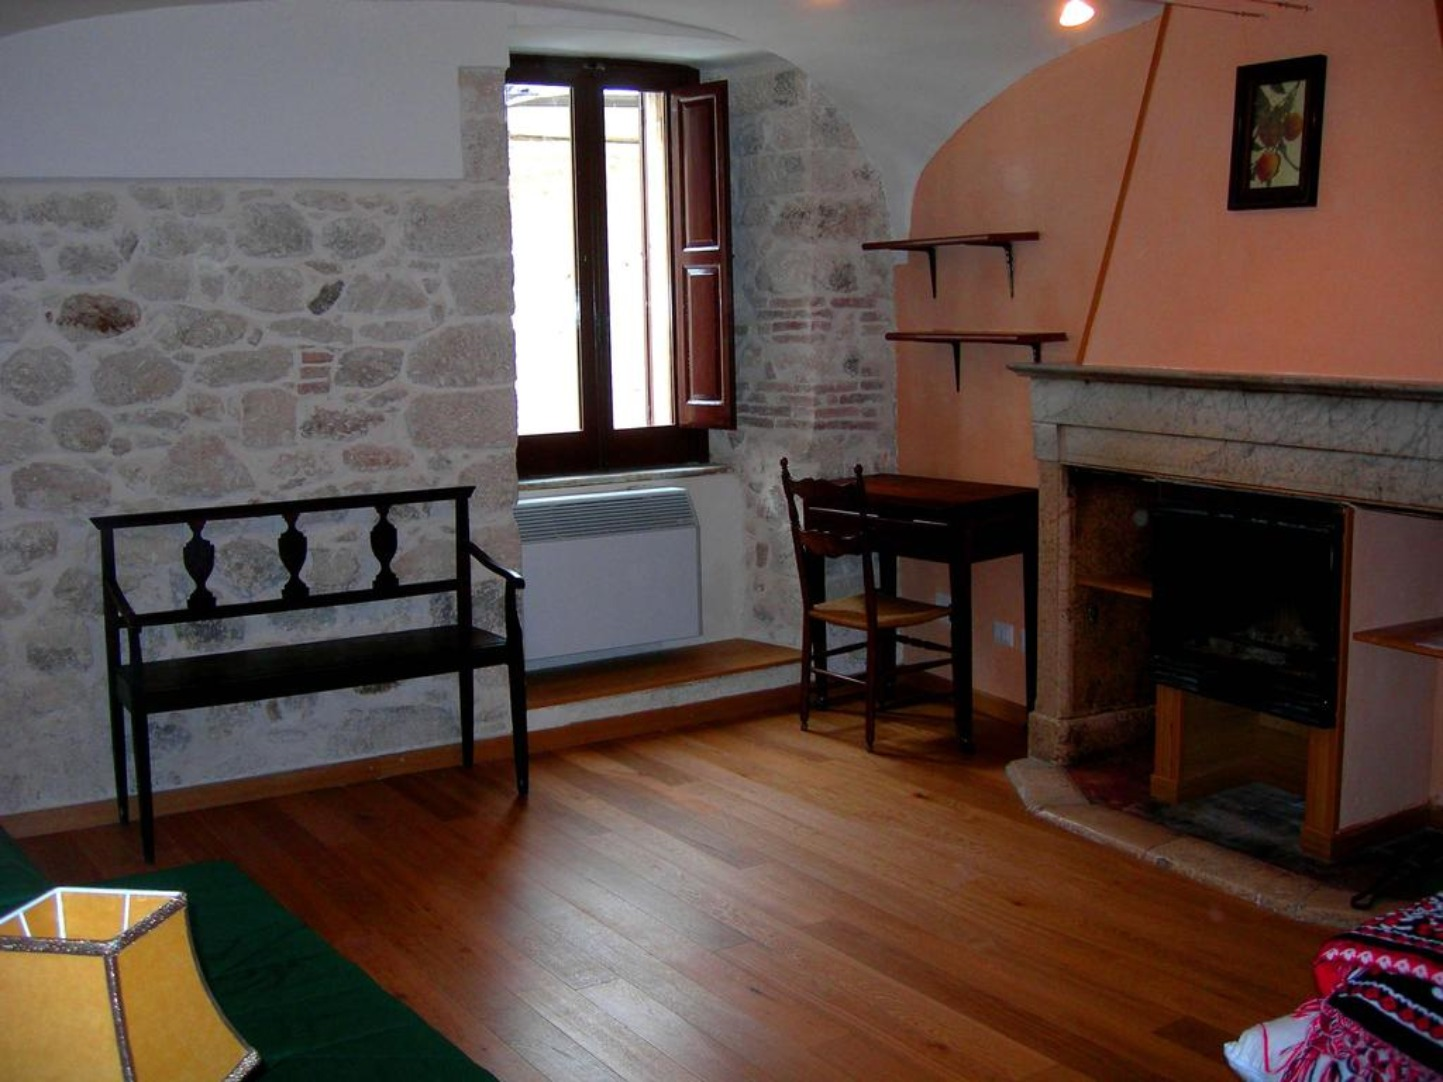 A living room with a wooden floor at Via Della Piazza Bed&Breakfast.